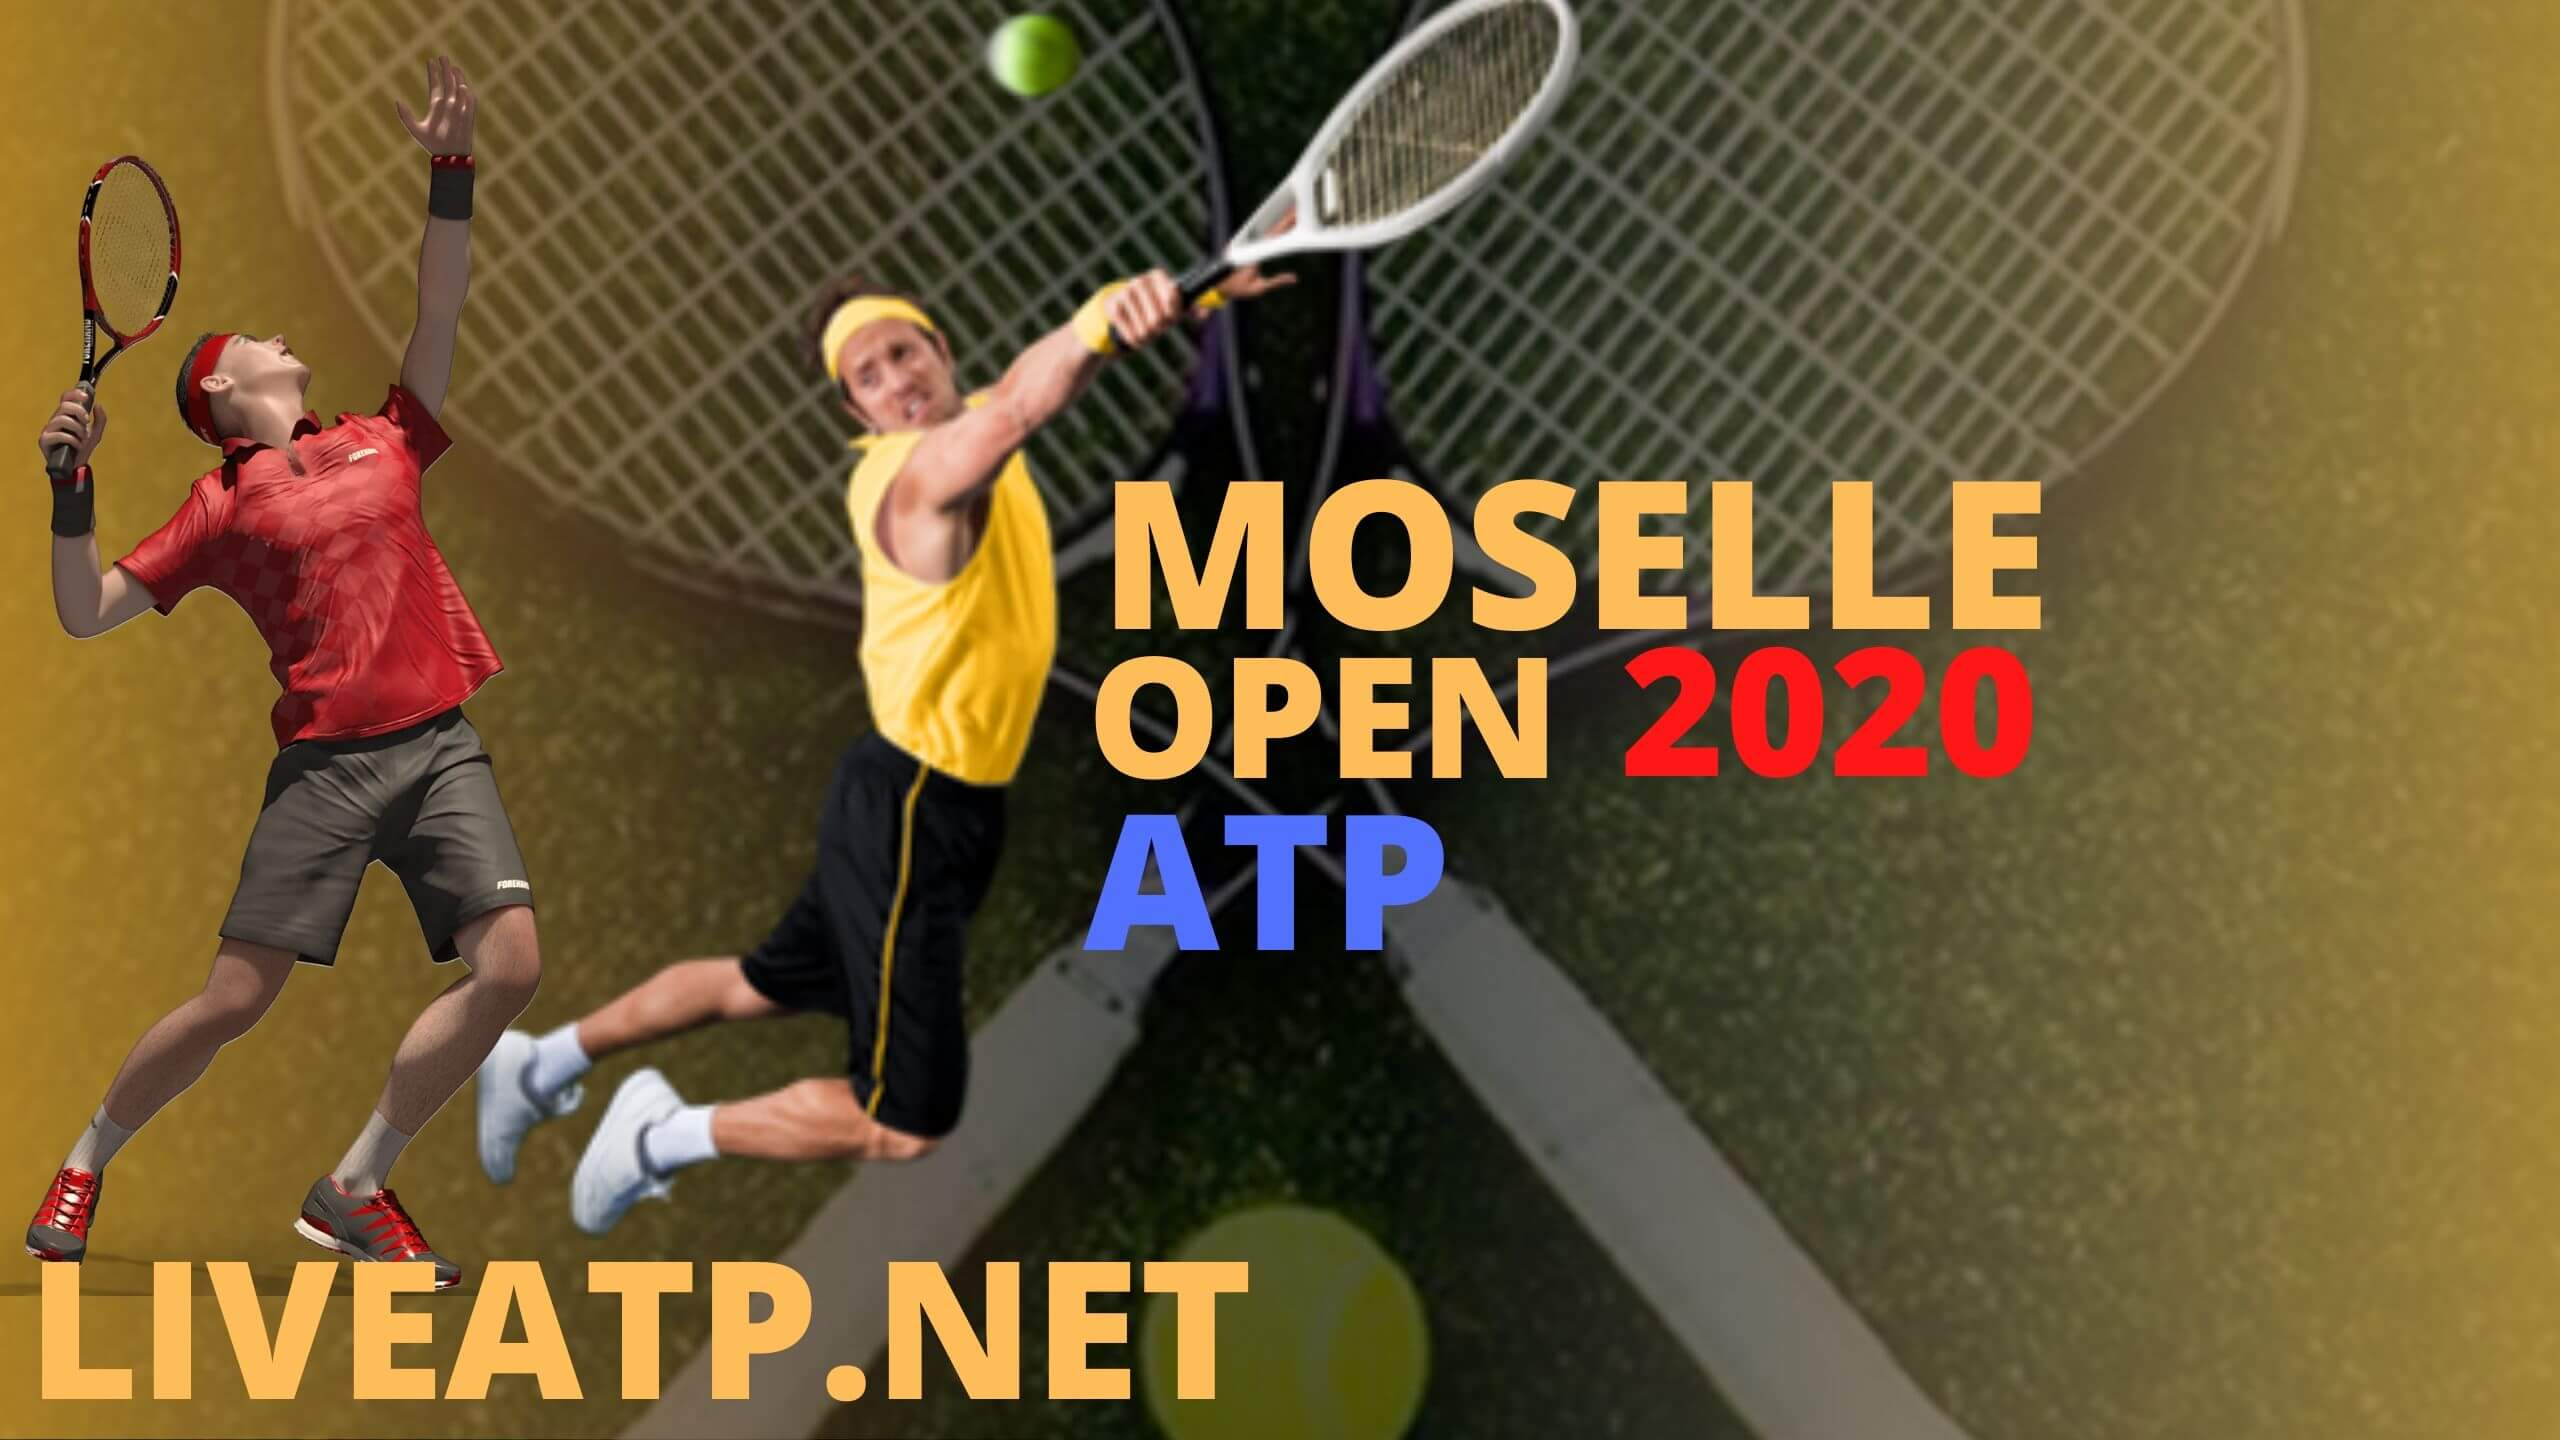 Moselle Open Live Stream 2020 | Semi Final